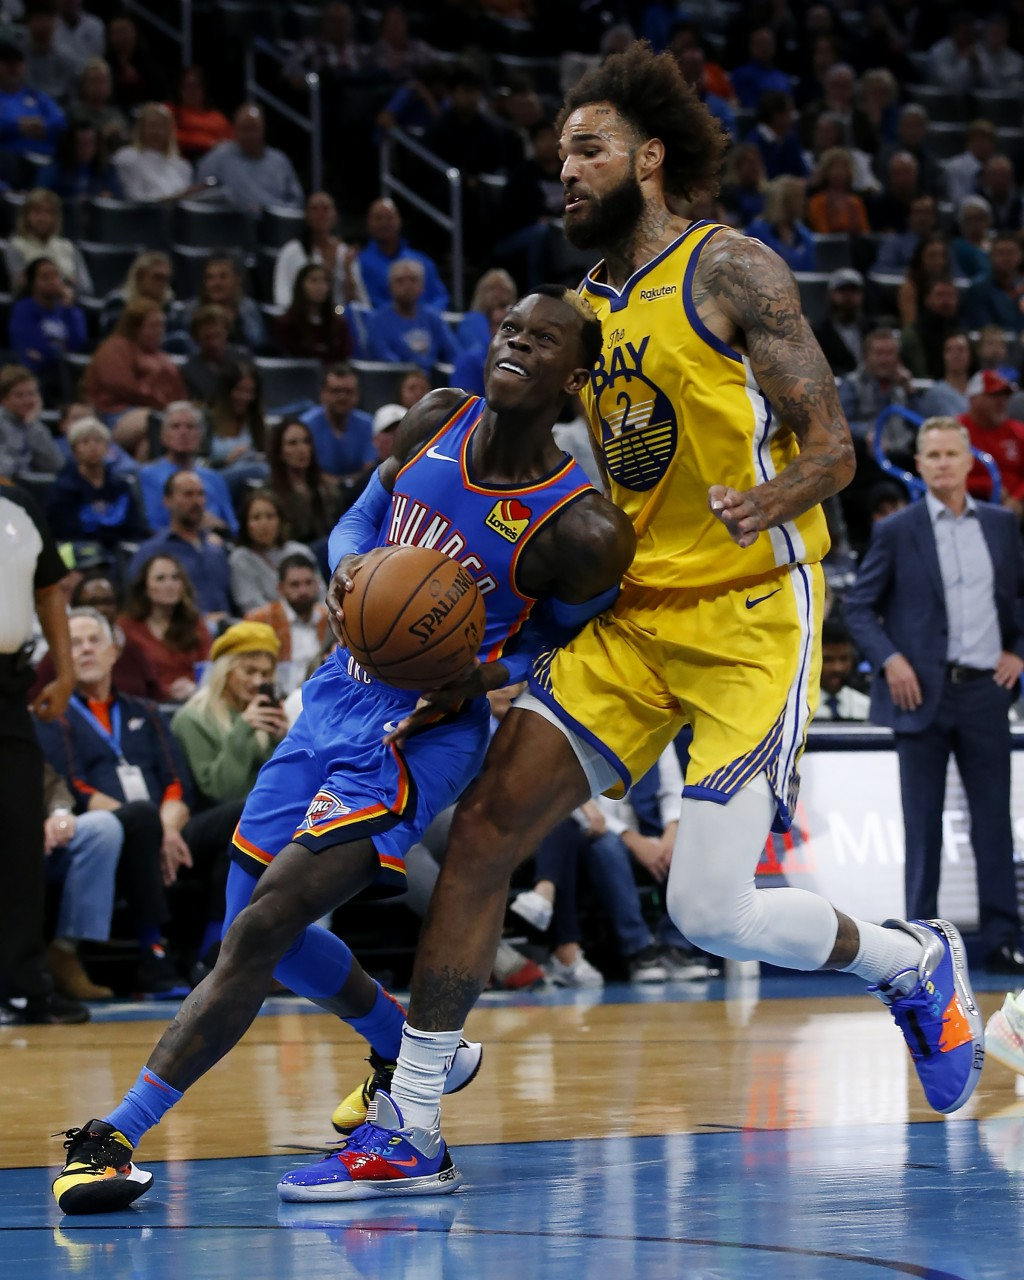 Oklahoma City Thunder's Dennis Schroder (17) drives the ball past Golden State Warriors' Willie Cauley-Stein (2) during the second half of an NBA bask...